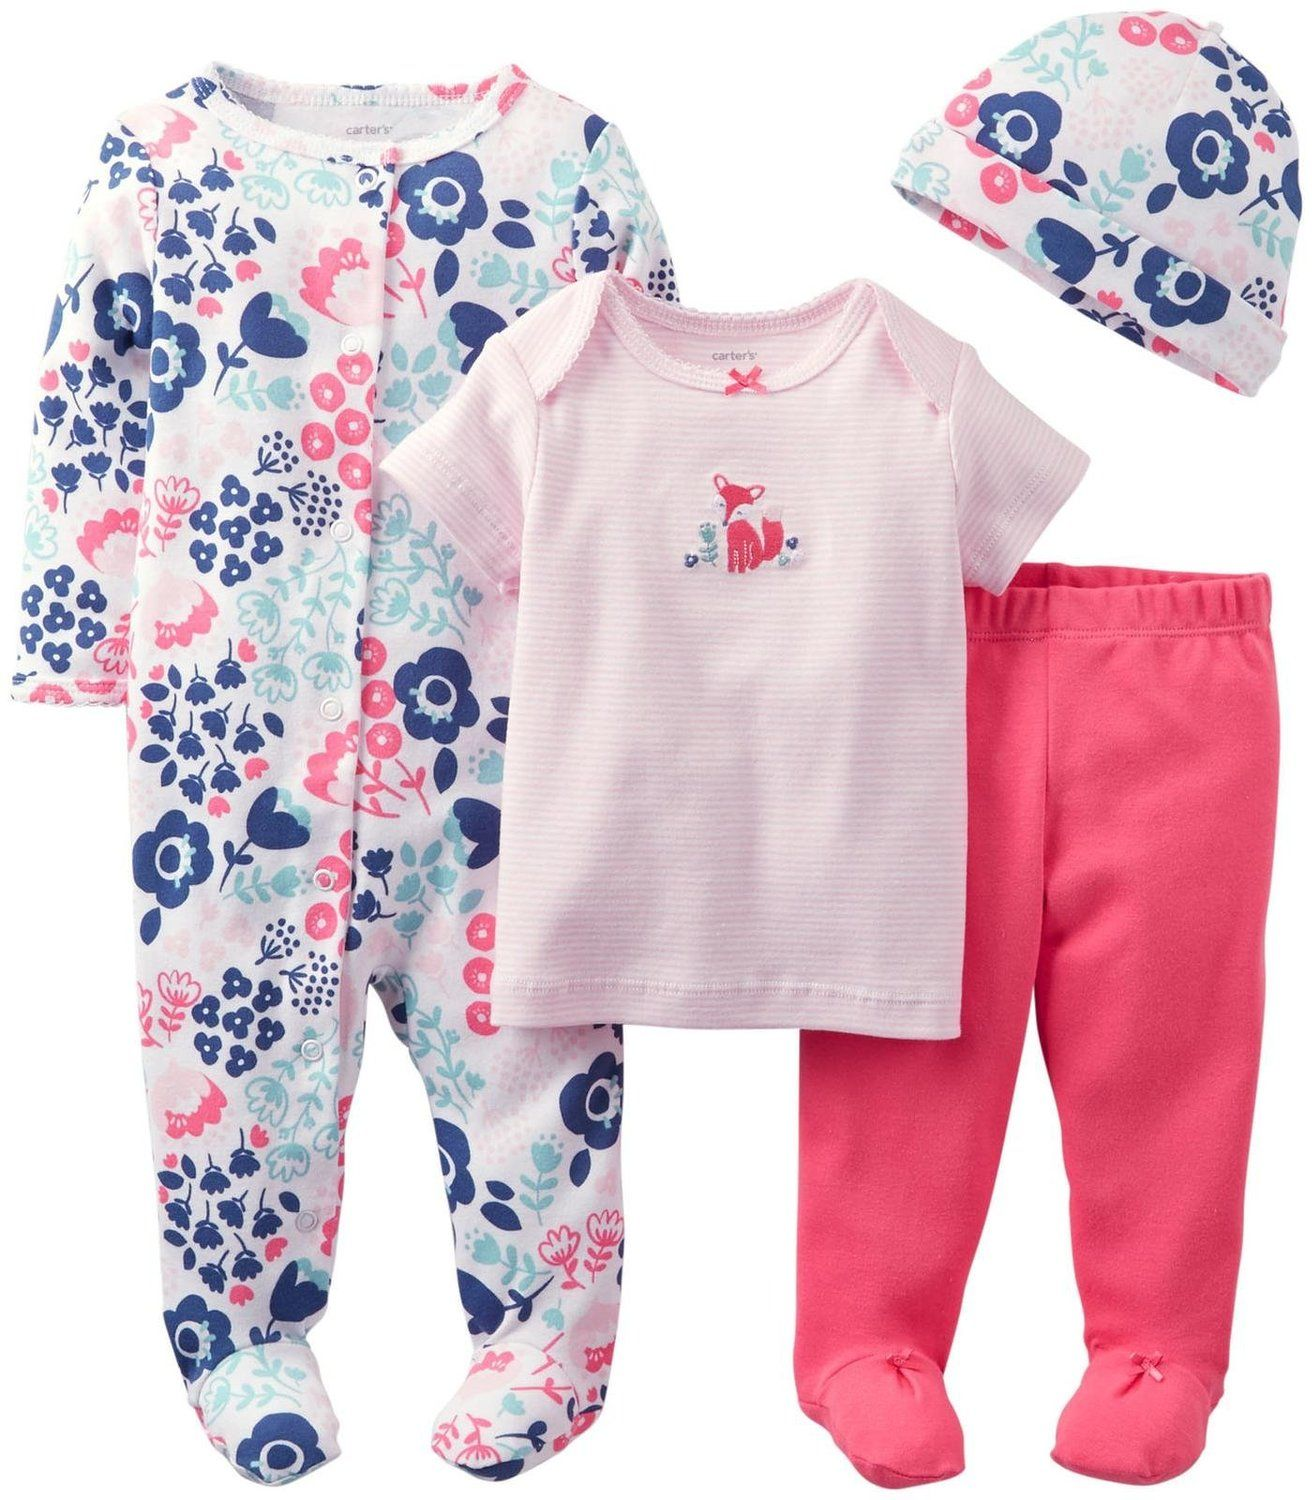 e80fae69bd32 Amazon.com  Carter s Baby Girls  4 Piece Layette Set (Baby) - Coral ...